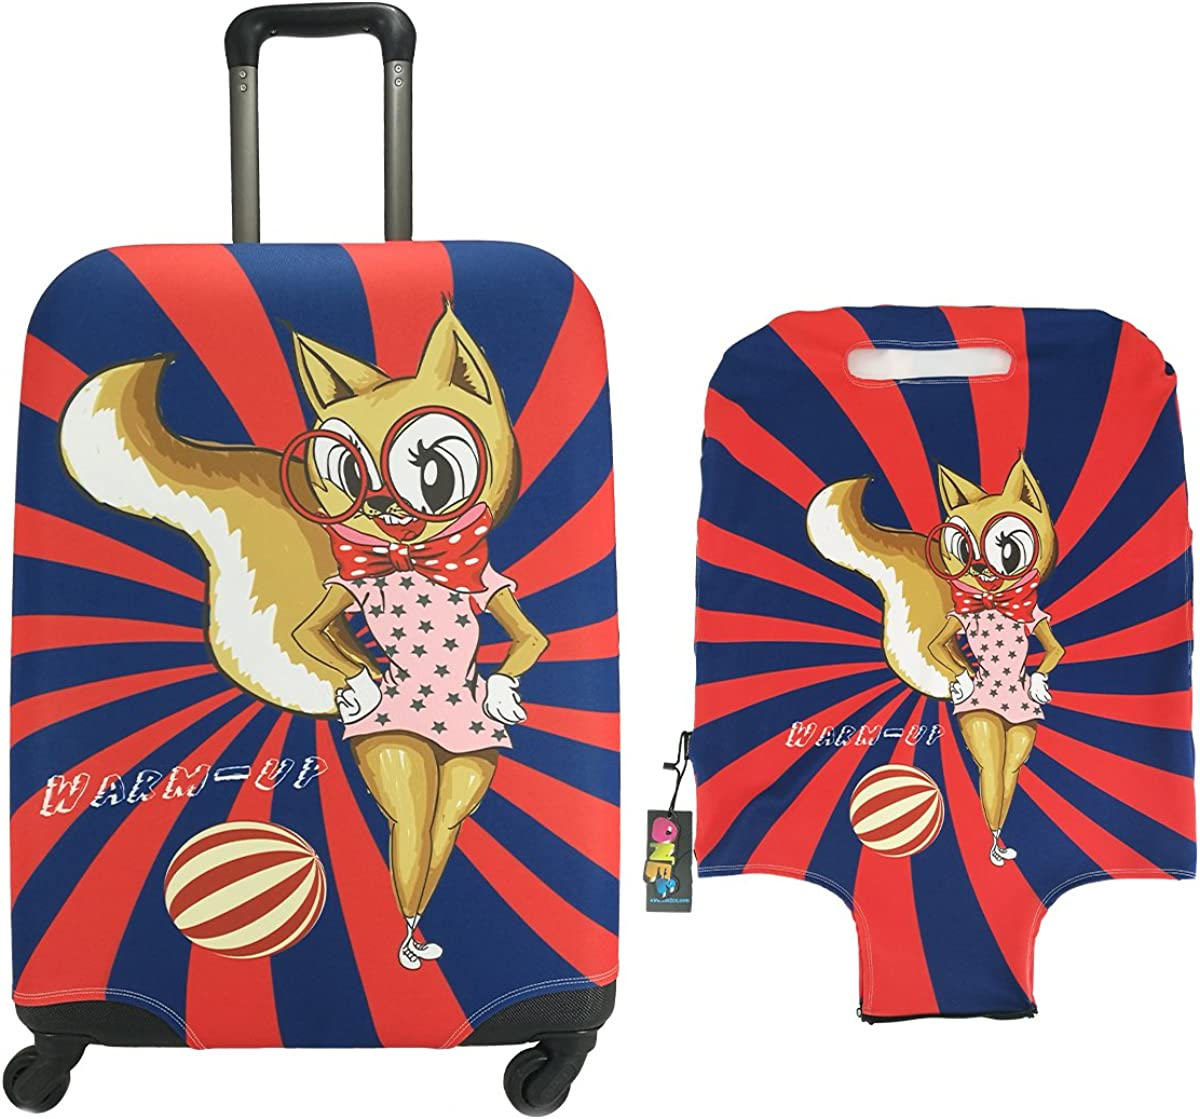 Travel Luggage Cover ONE2 Cartoon Suitcase Protector Fits 18-30 Inch Luggage